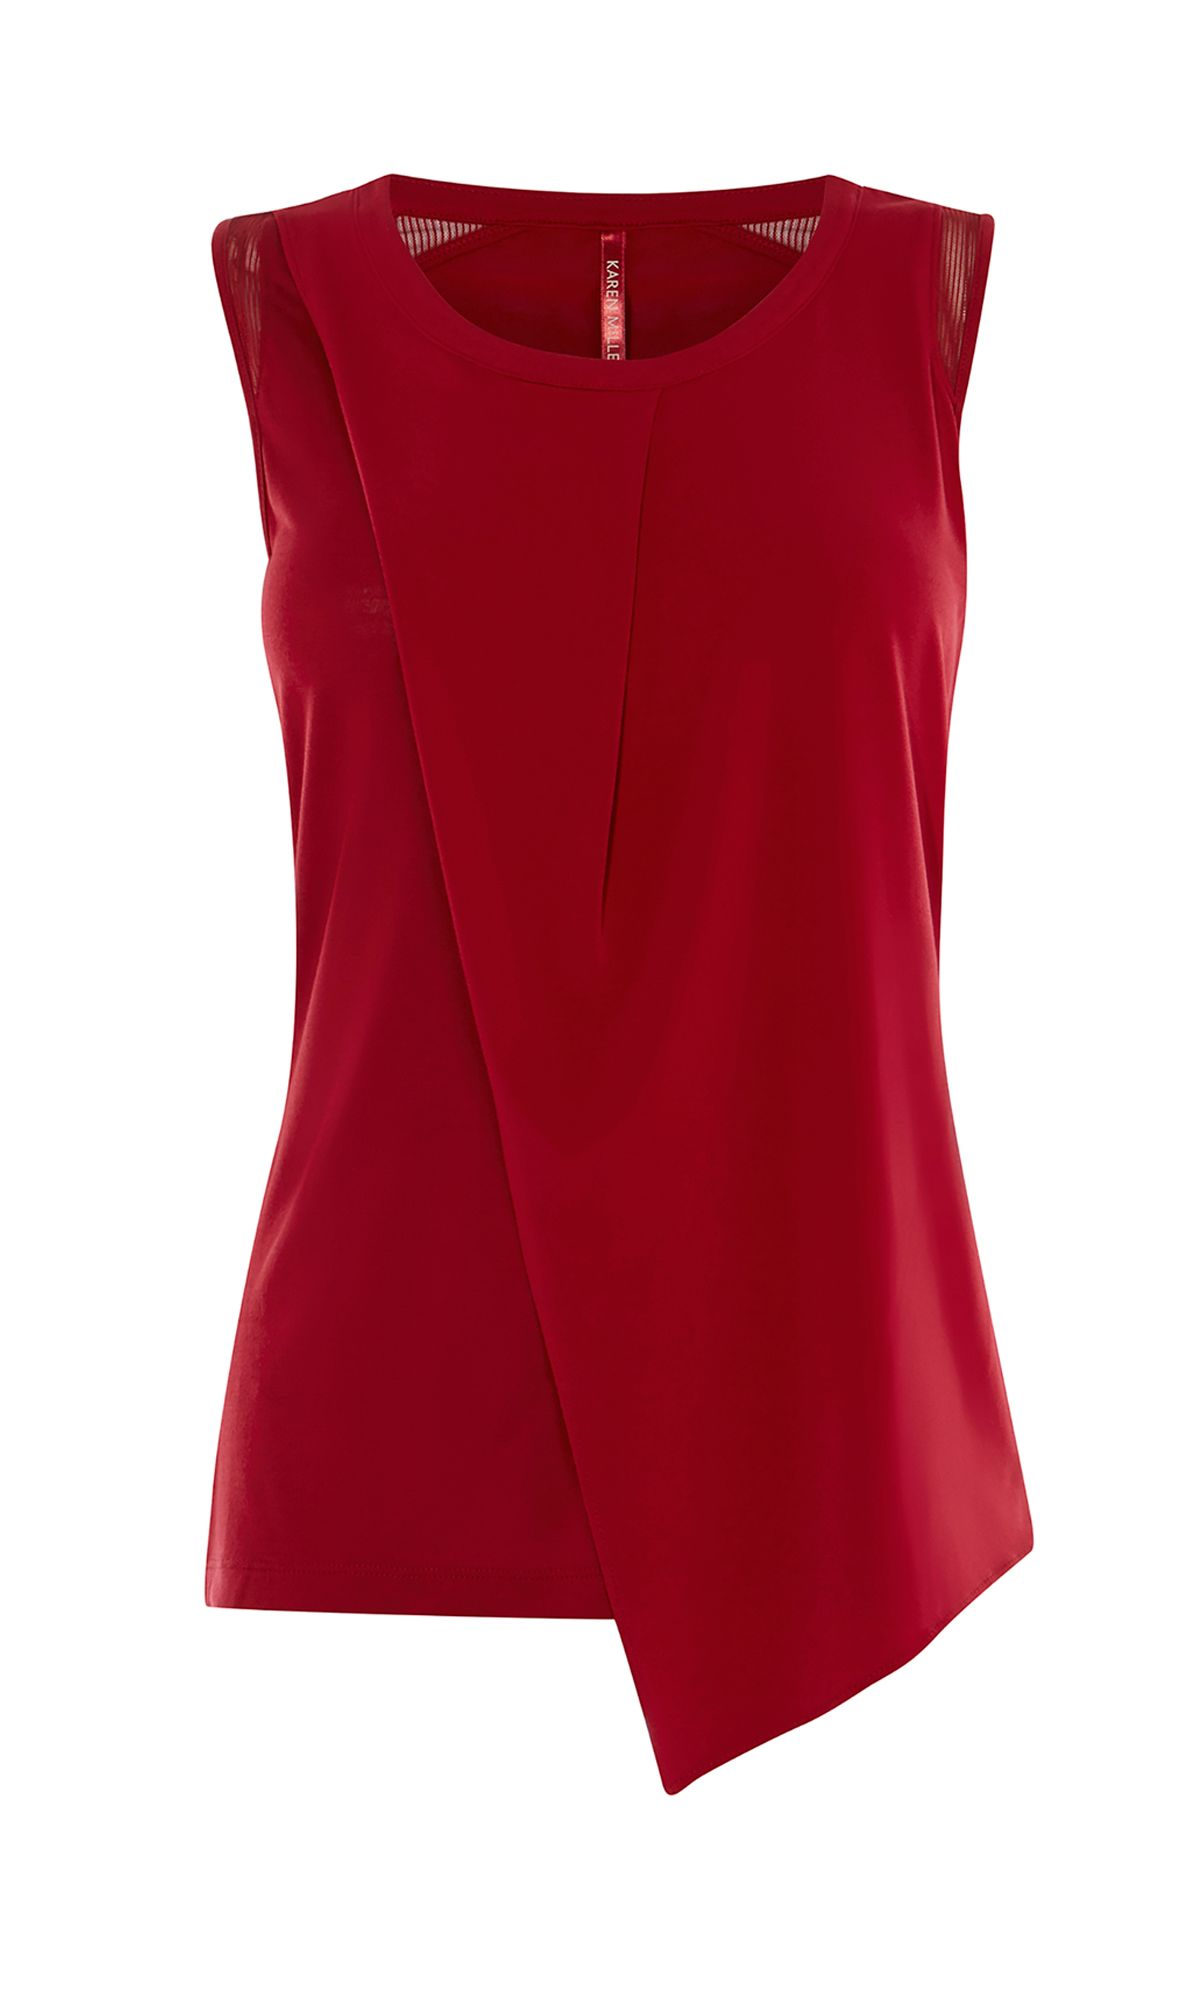 Karen Millen Layered Sleeveless Top, Red